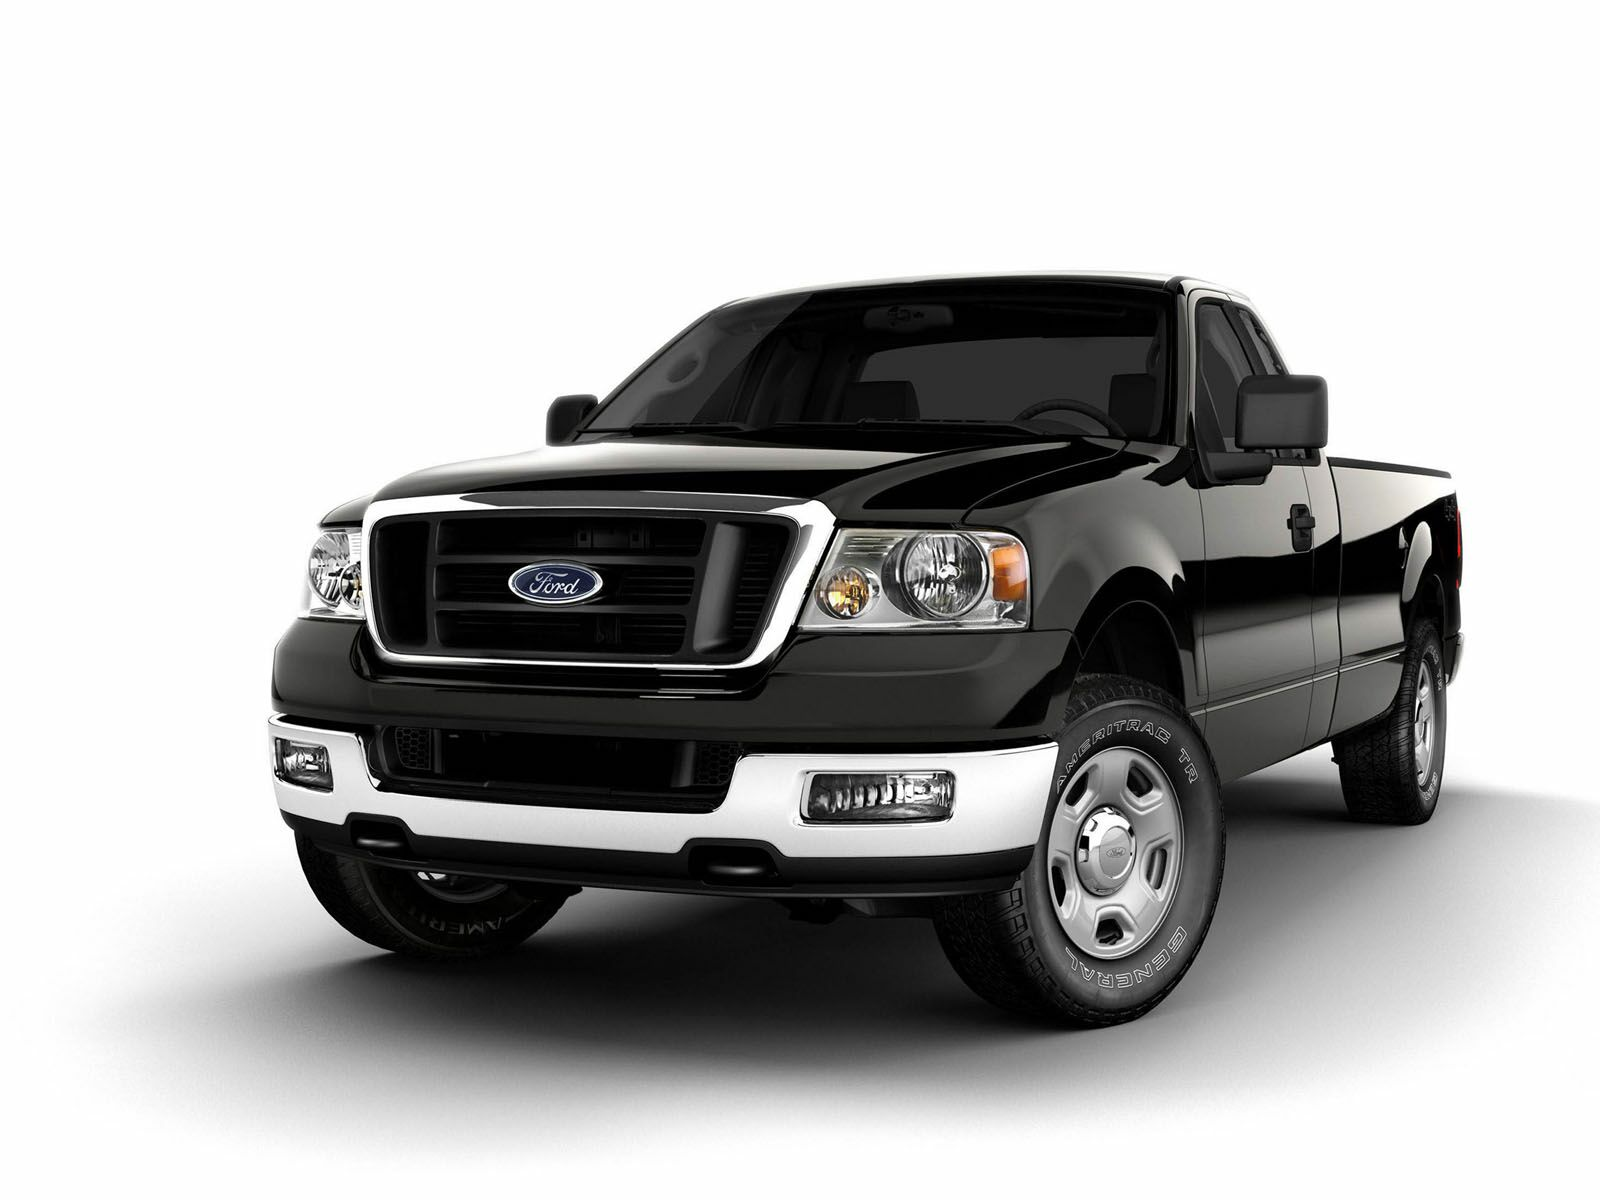 2013 Ford F150 HD Wallpaper HD Desktop Wallpaper 1600x1200